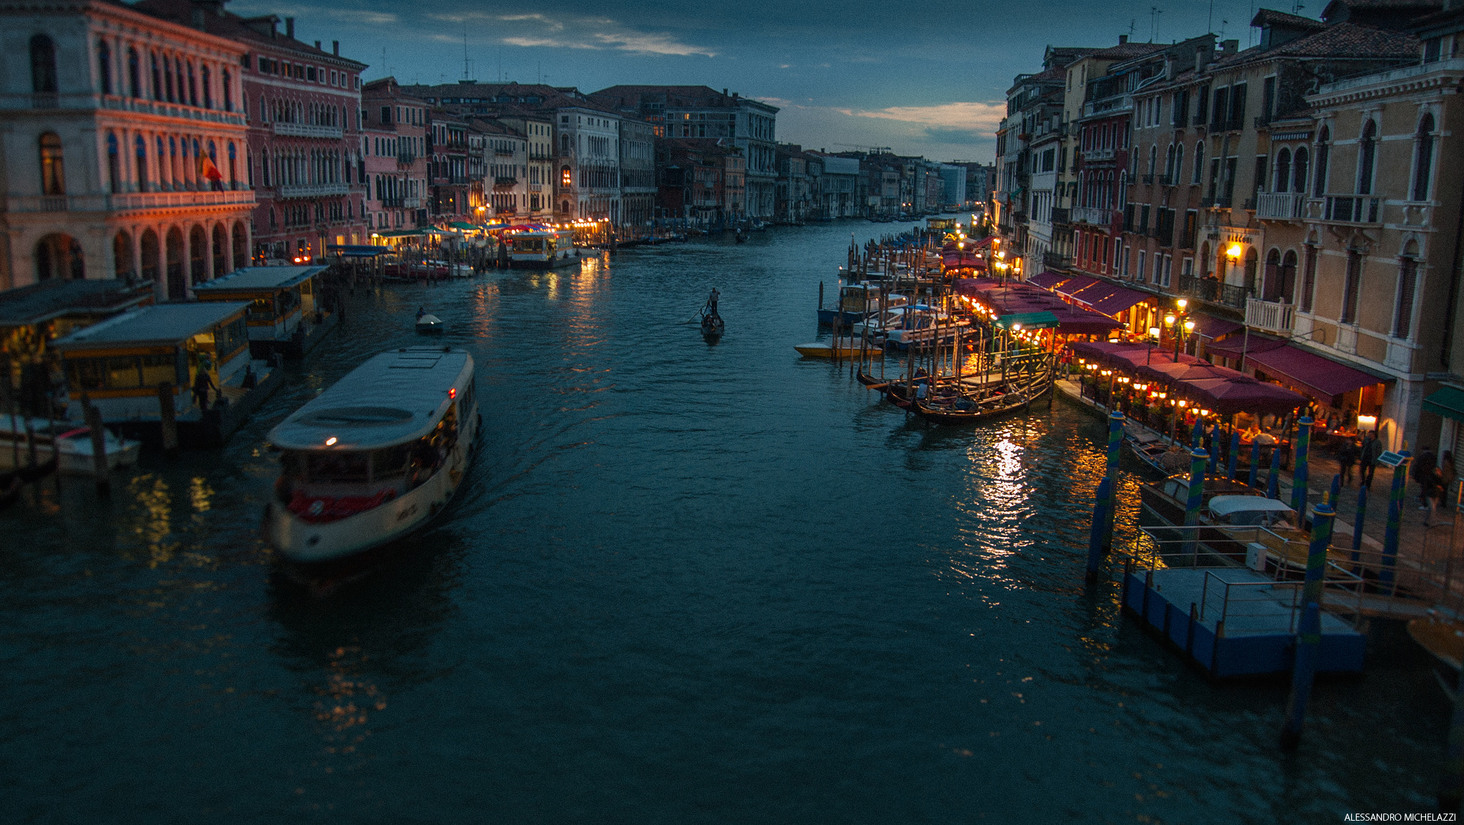 Photos of Venice, Italy, shot with mirrorless camera